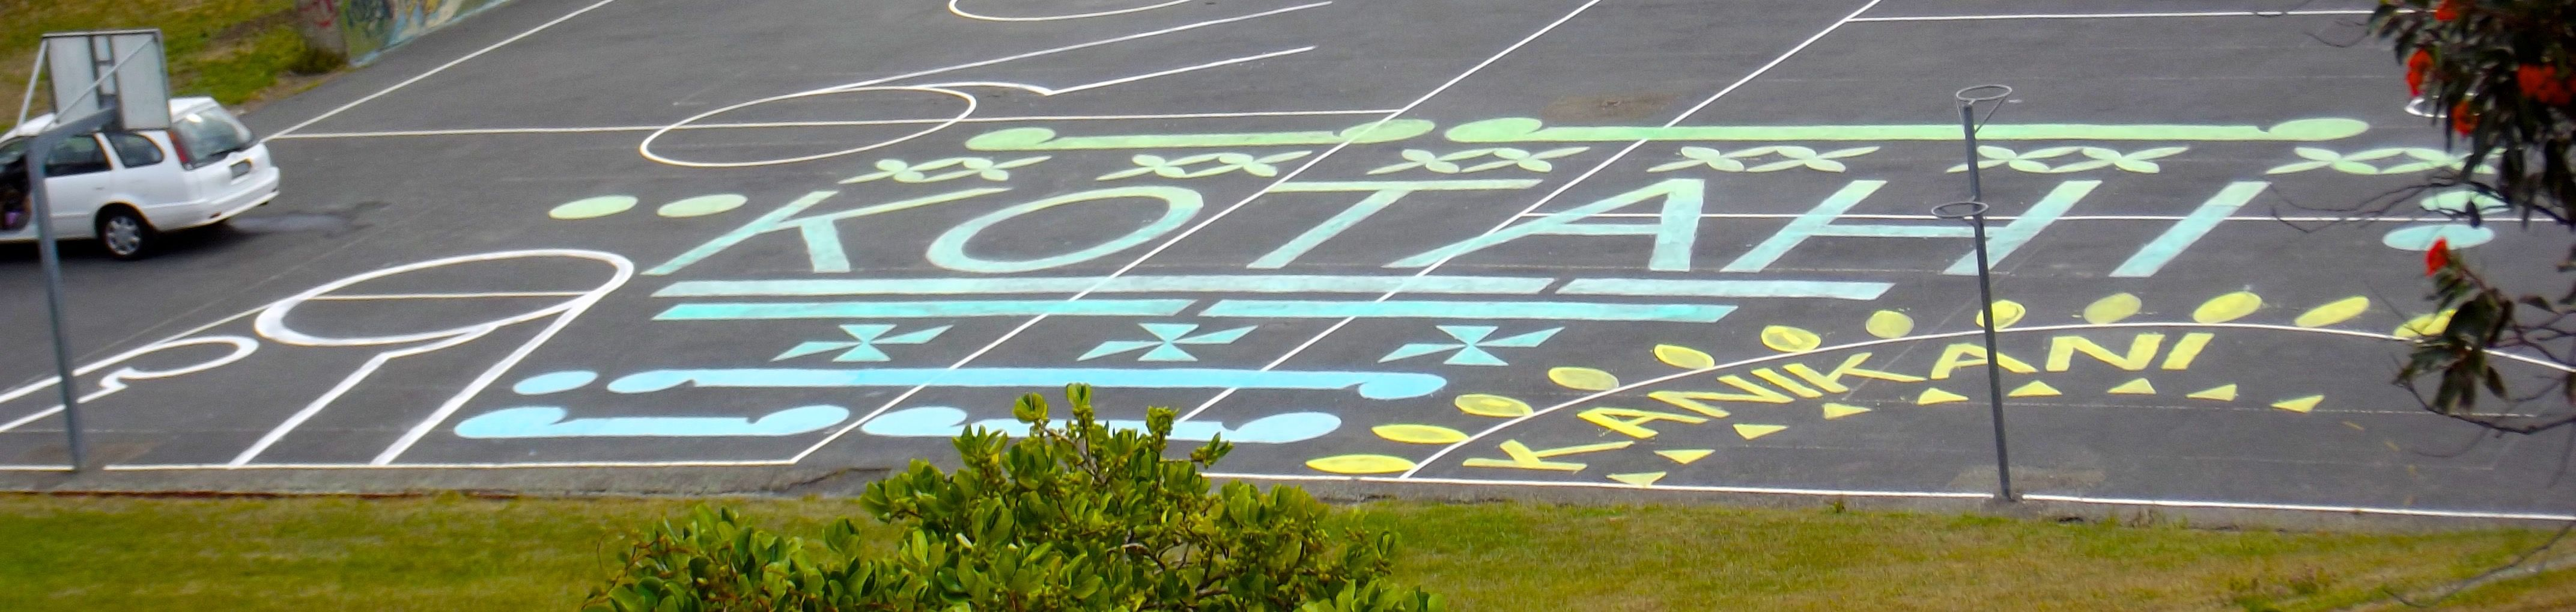 Temporary design on school courts for Waitangi Day celebration Feburary 2015